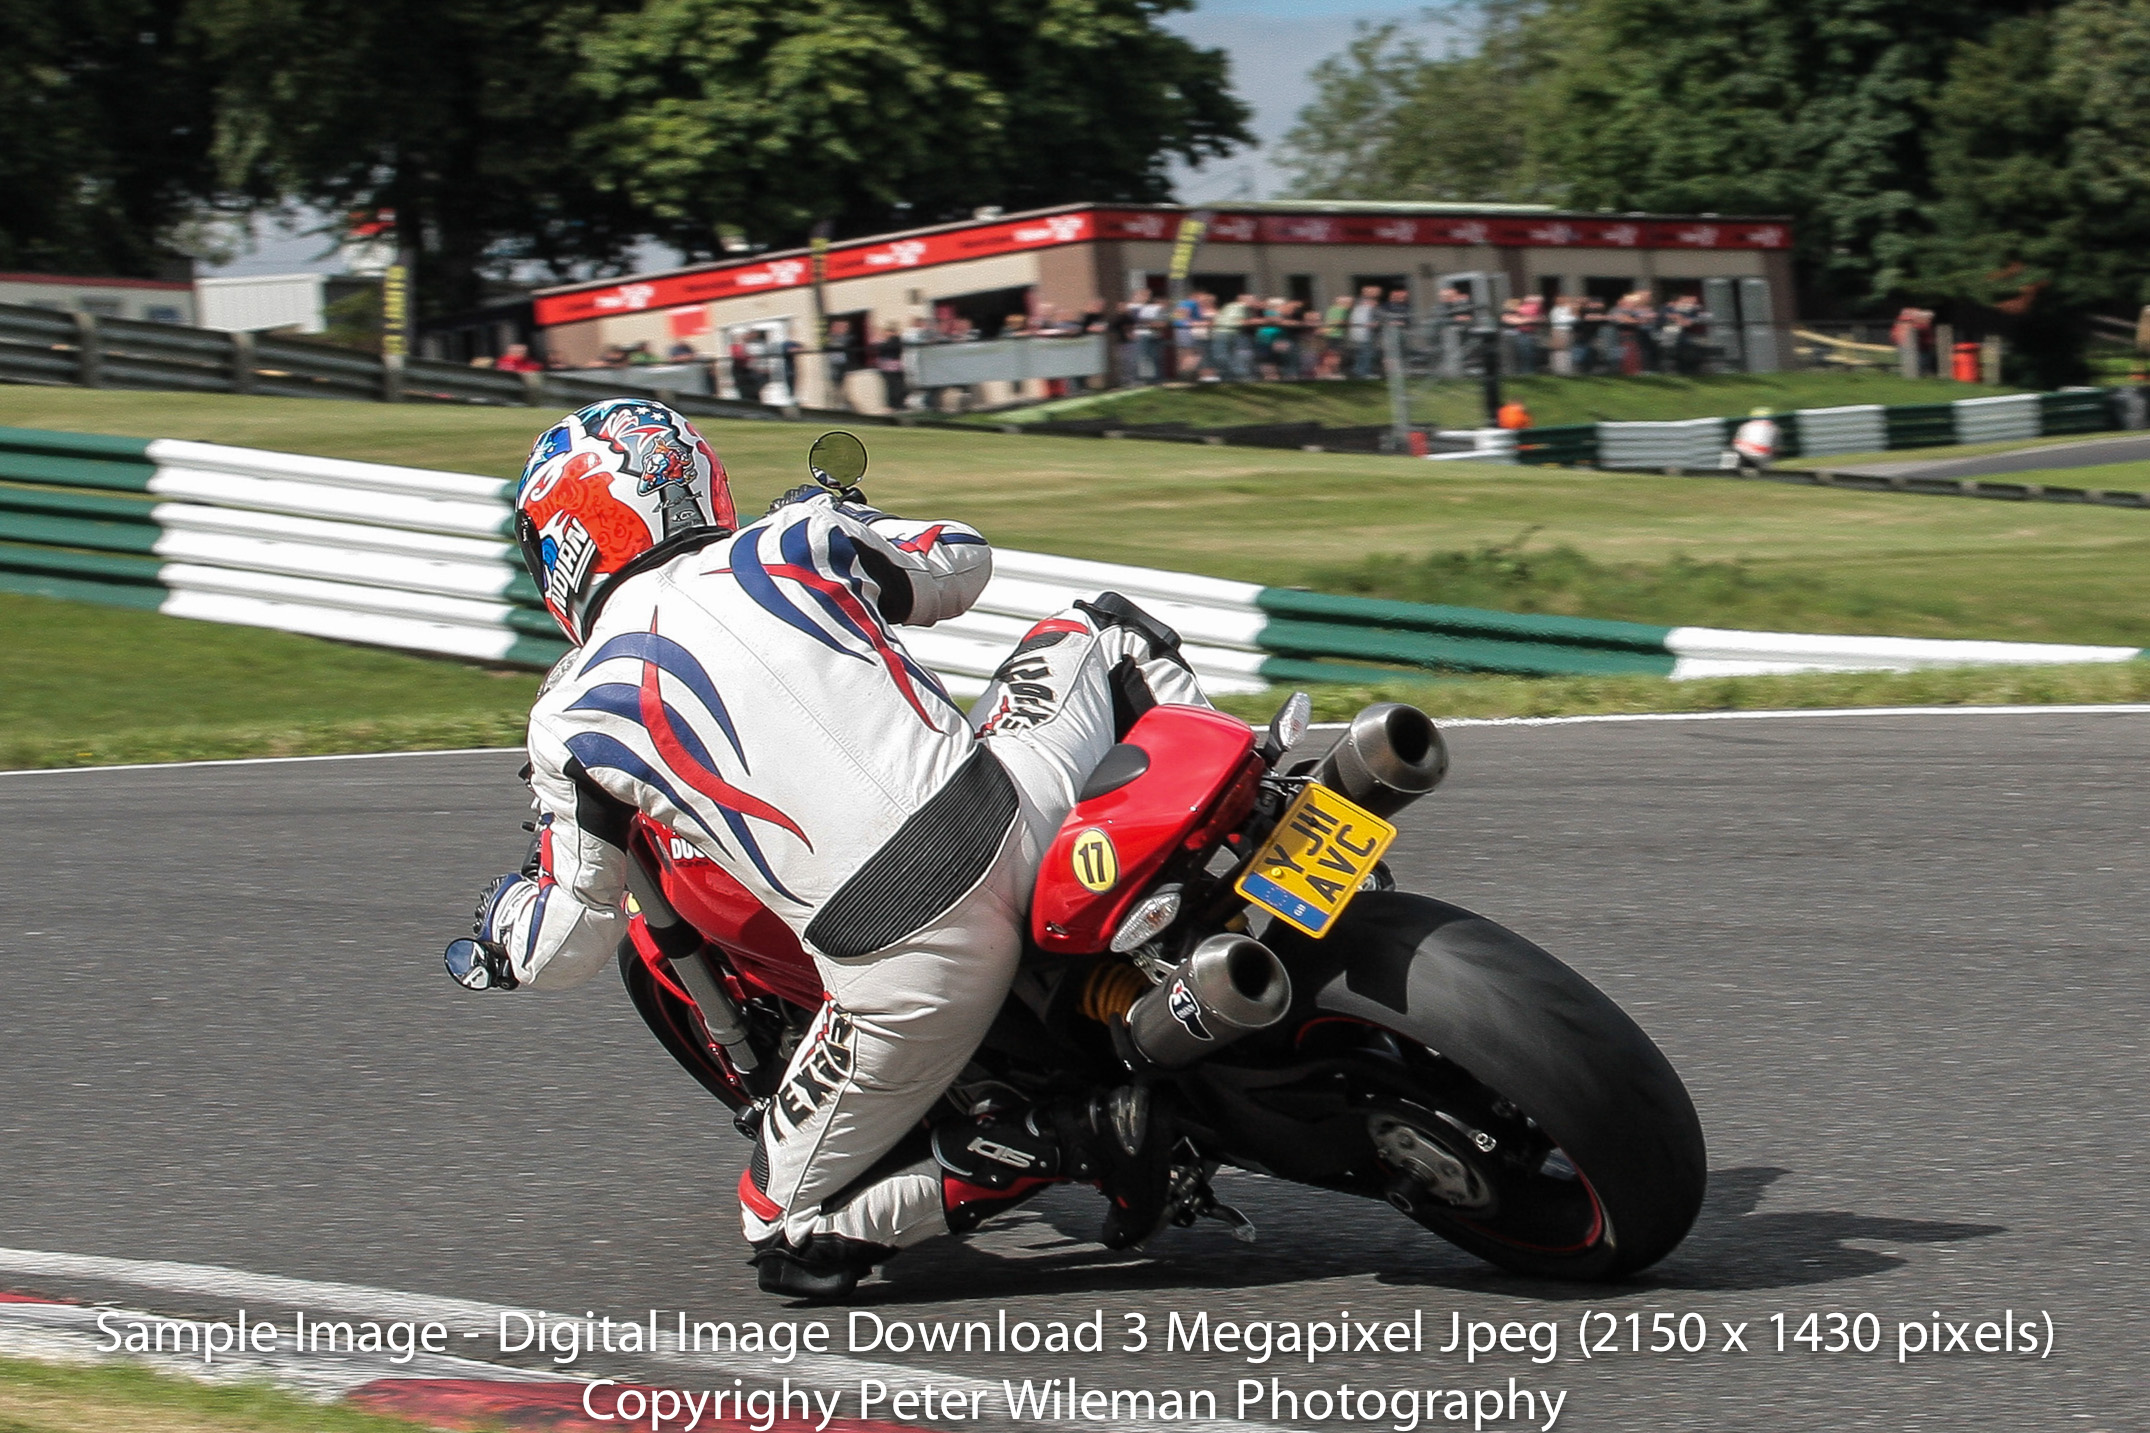 11-08-2013 Cadwell Park trackday photographs